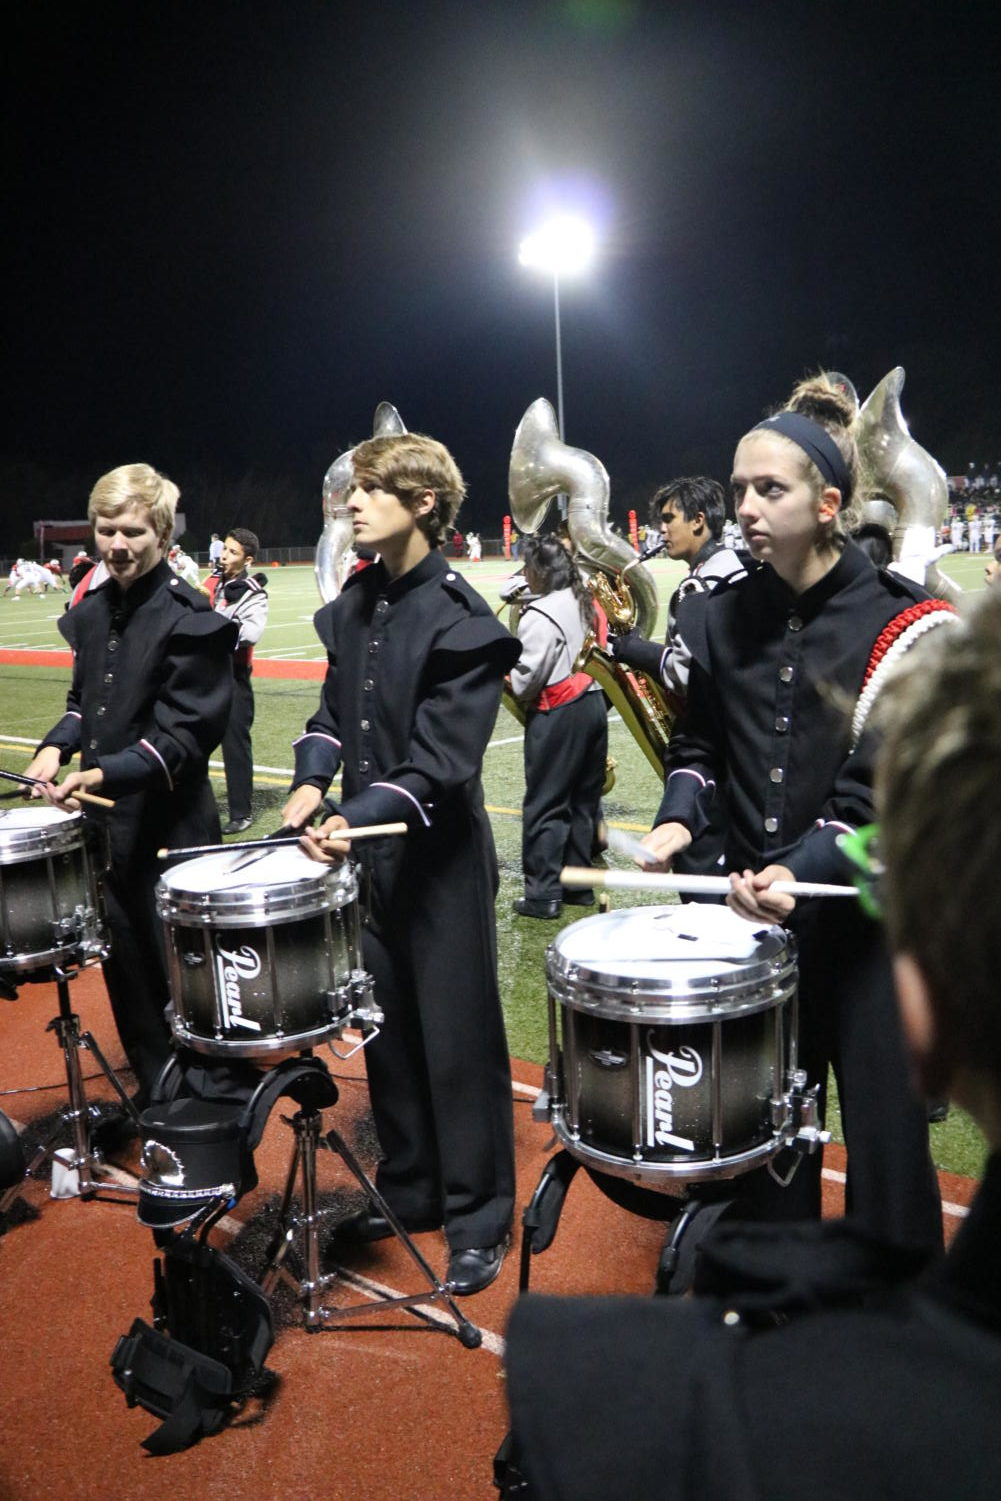 Senior Jillian Hoffstadt plays her drums to the beat of a song at a football game during the 2018 fall season.